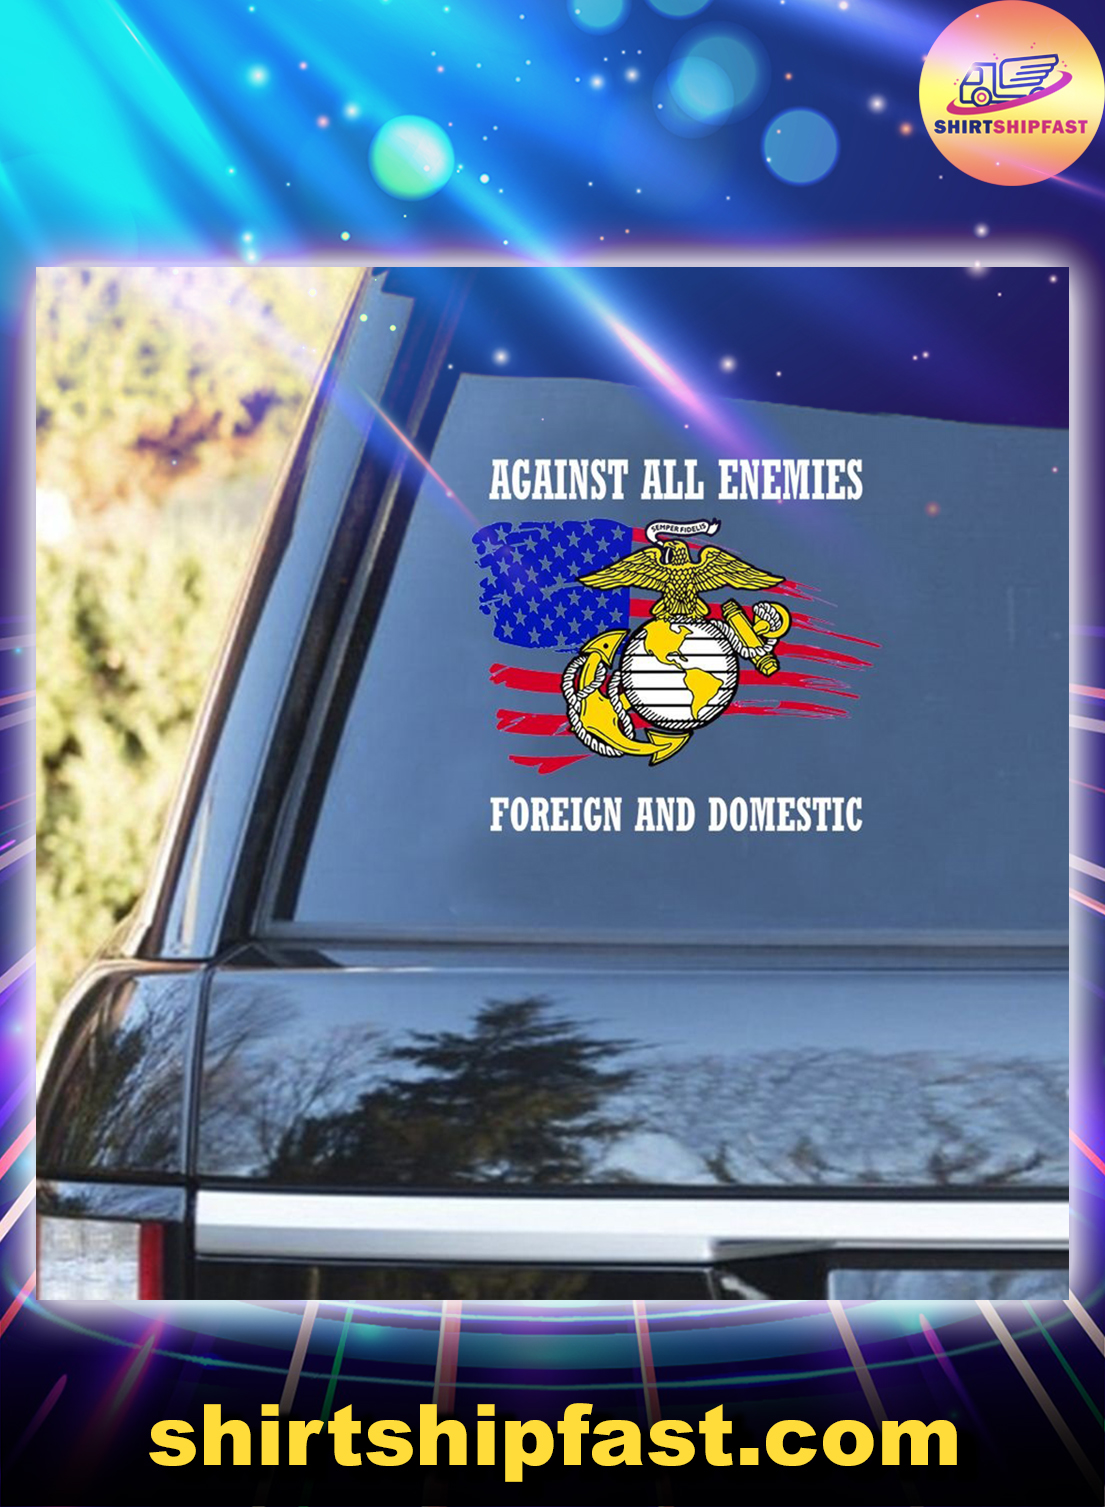 US Marine Corps Against all enemies foreign and domestic car sticker - Picture 1